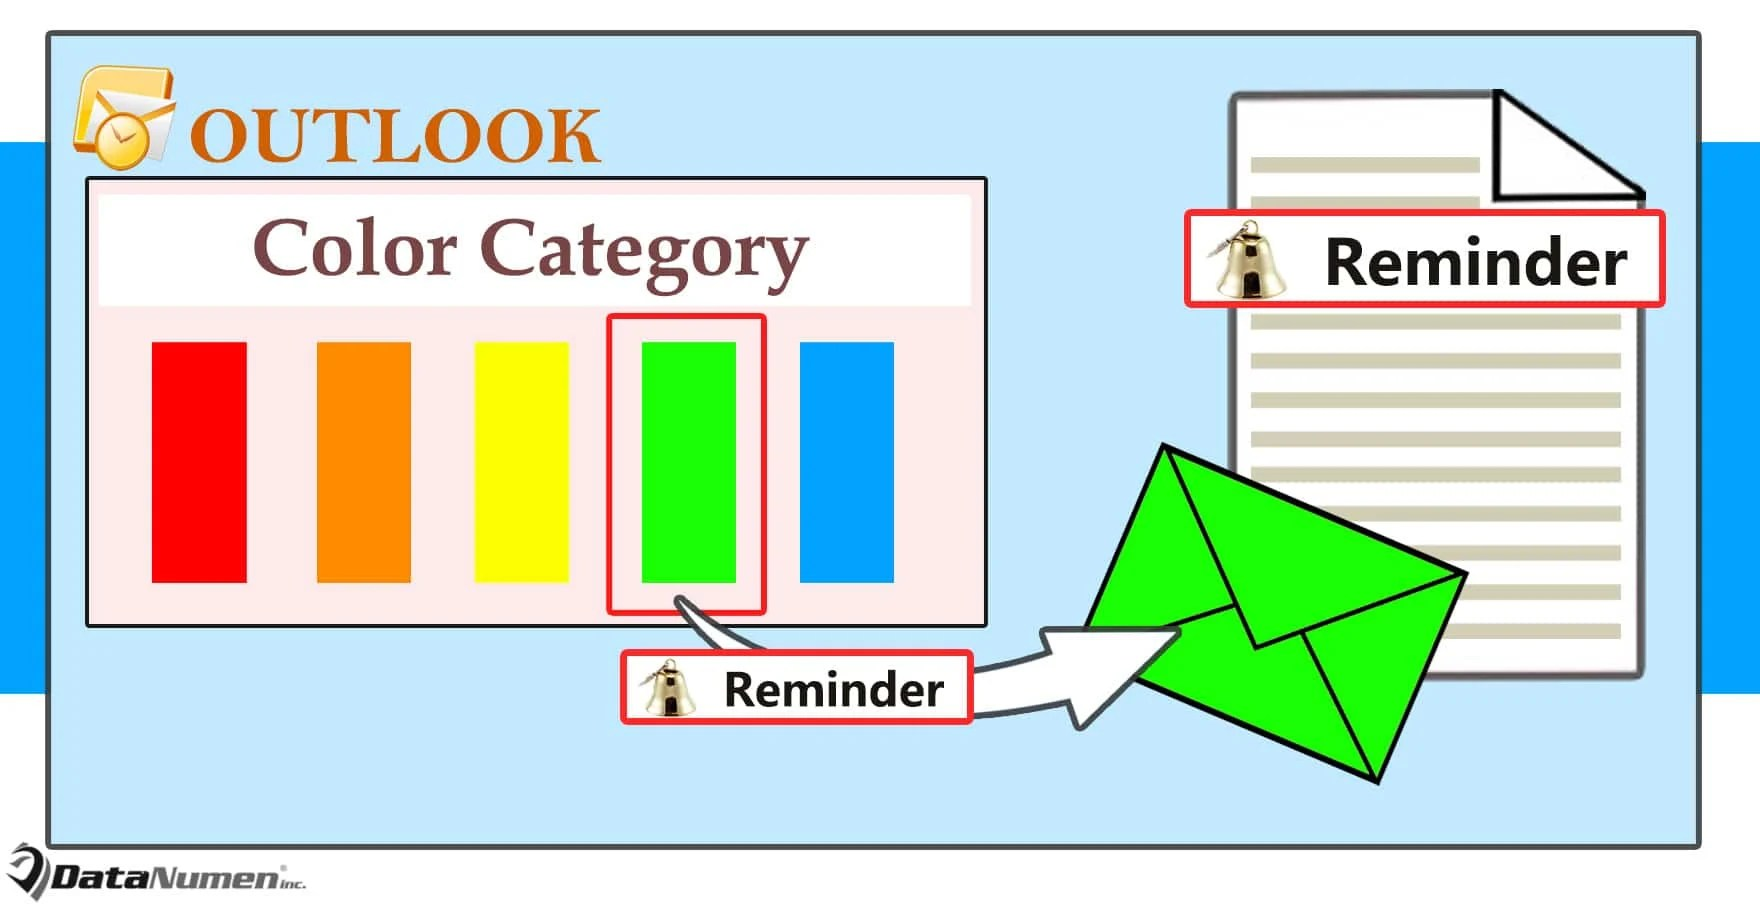 Auto Add a Reminder to an Outlook Email after Assigning a Specific Color Category to It